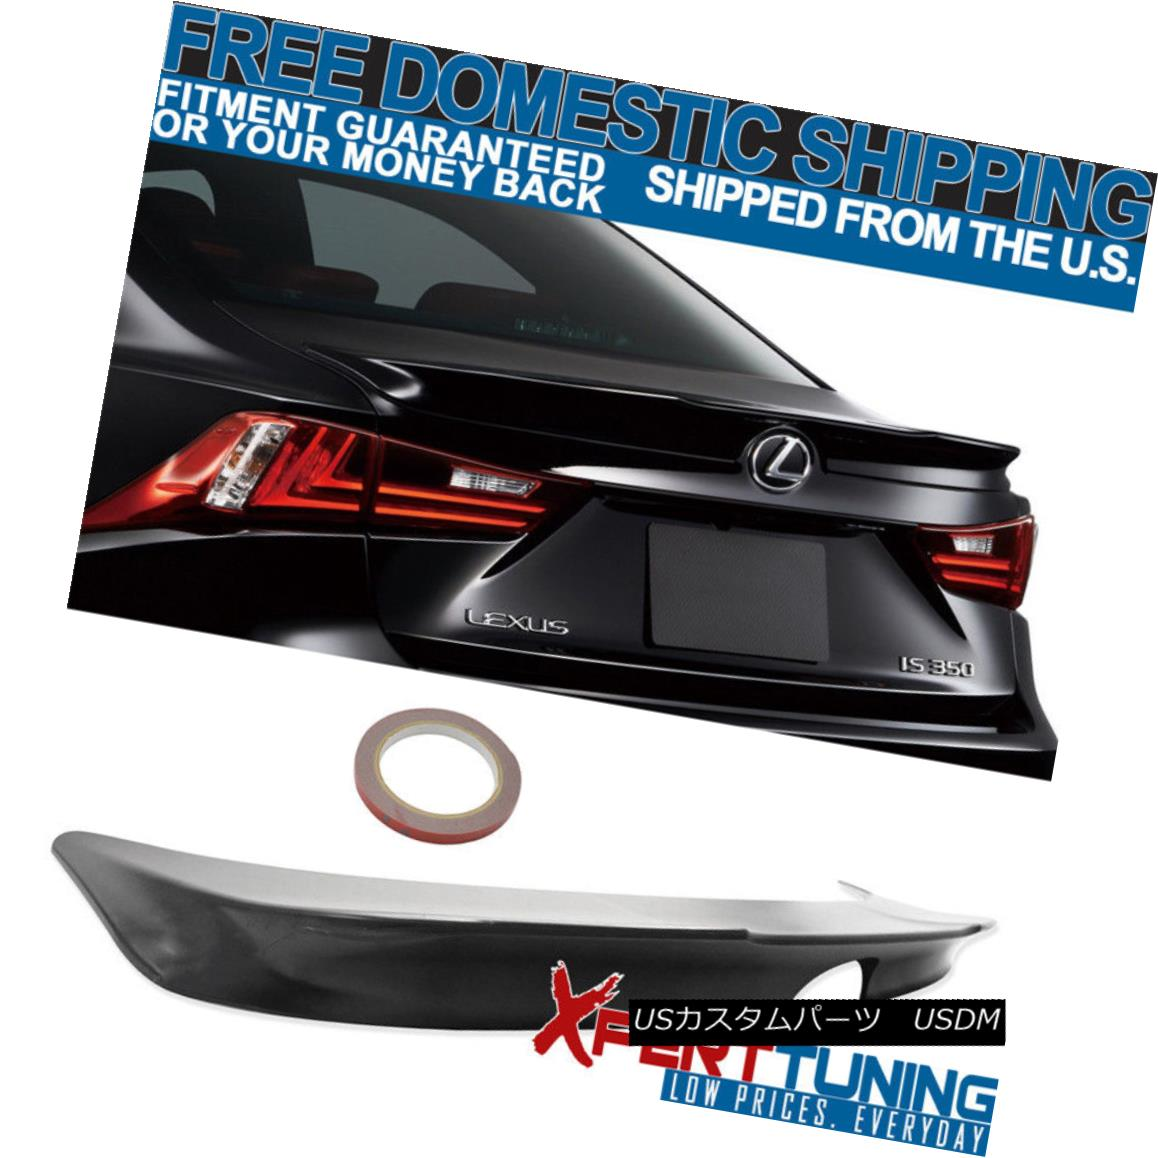 エアロパーツ FITs 14-16 Lexus IS250 IS300 IS350 F SPORT Unpainted ABS Trunk Spoiler FITs 14-16レクサスIS250 IS300 IS350 Fスポーツ未塗装ABSトランク・スポイラー